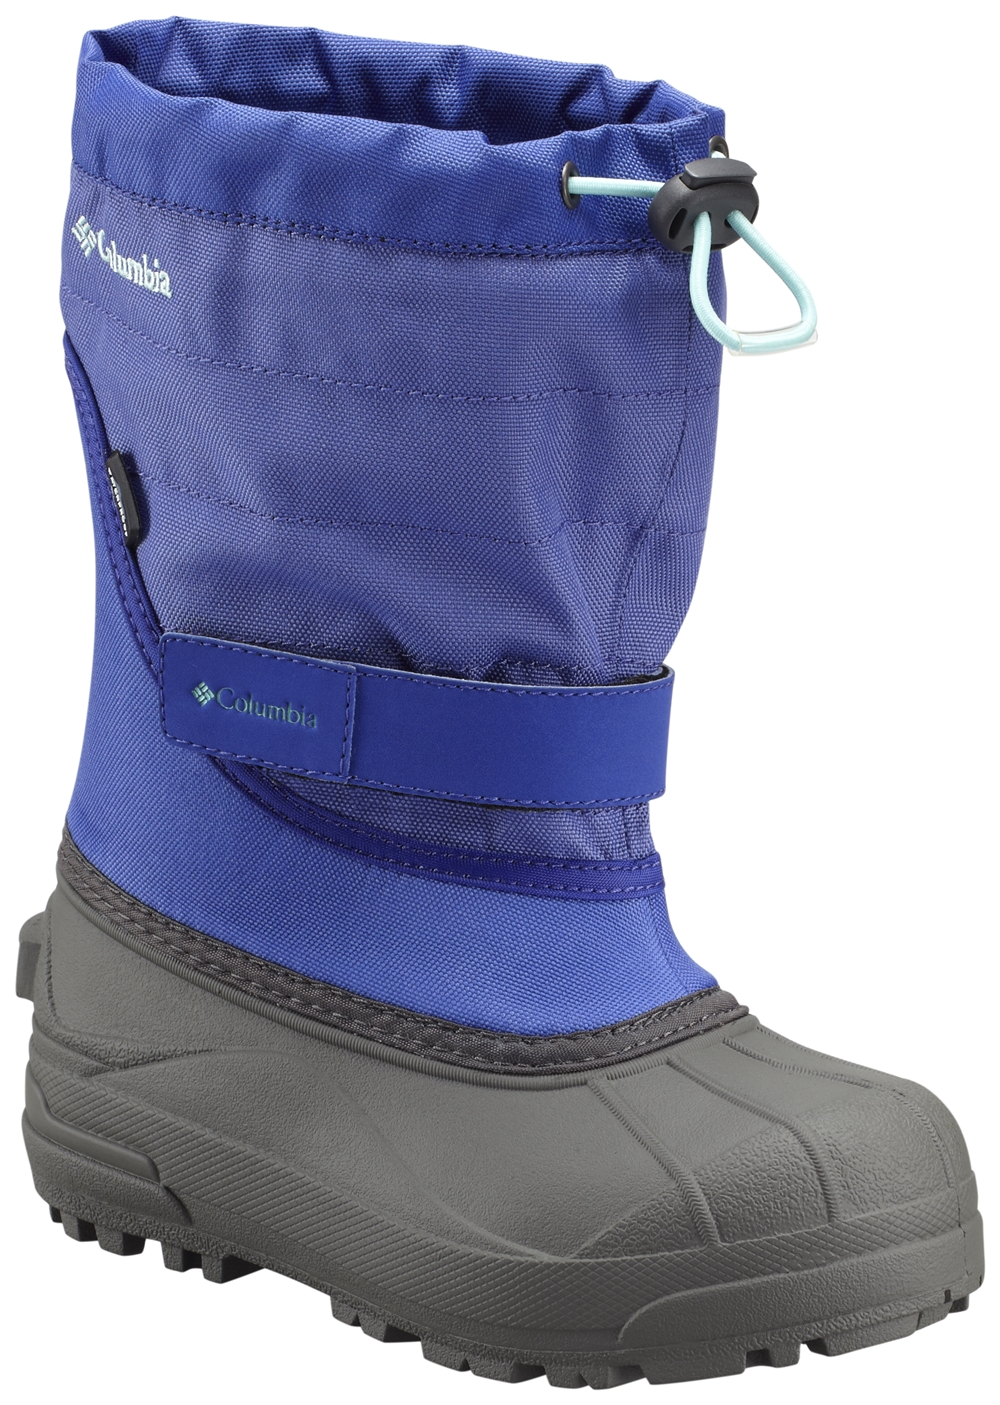 payless shoes mens snow boots mount mercy